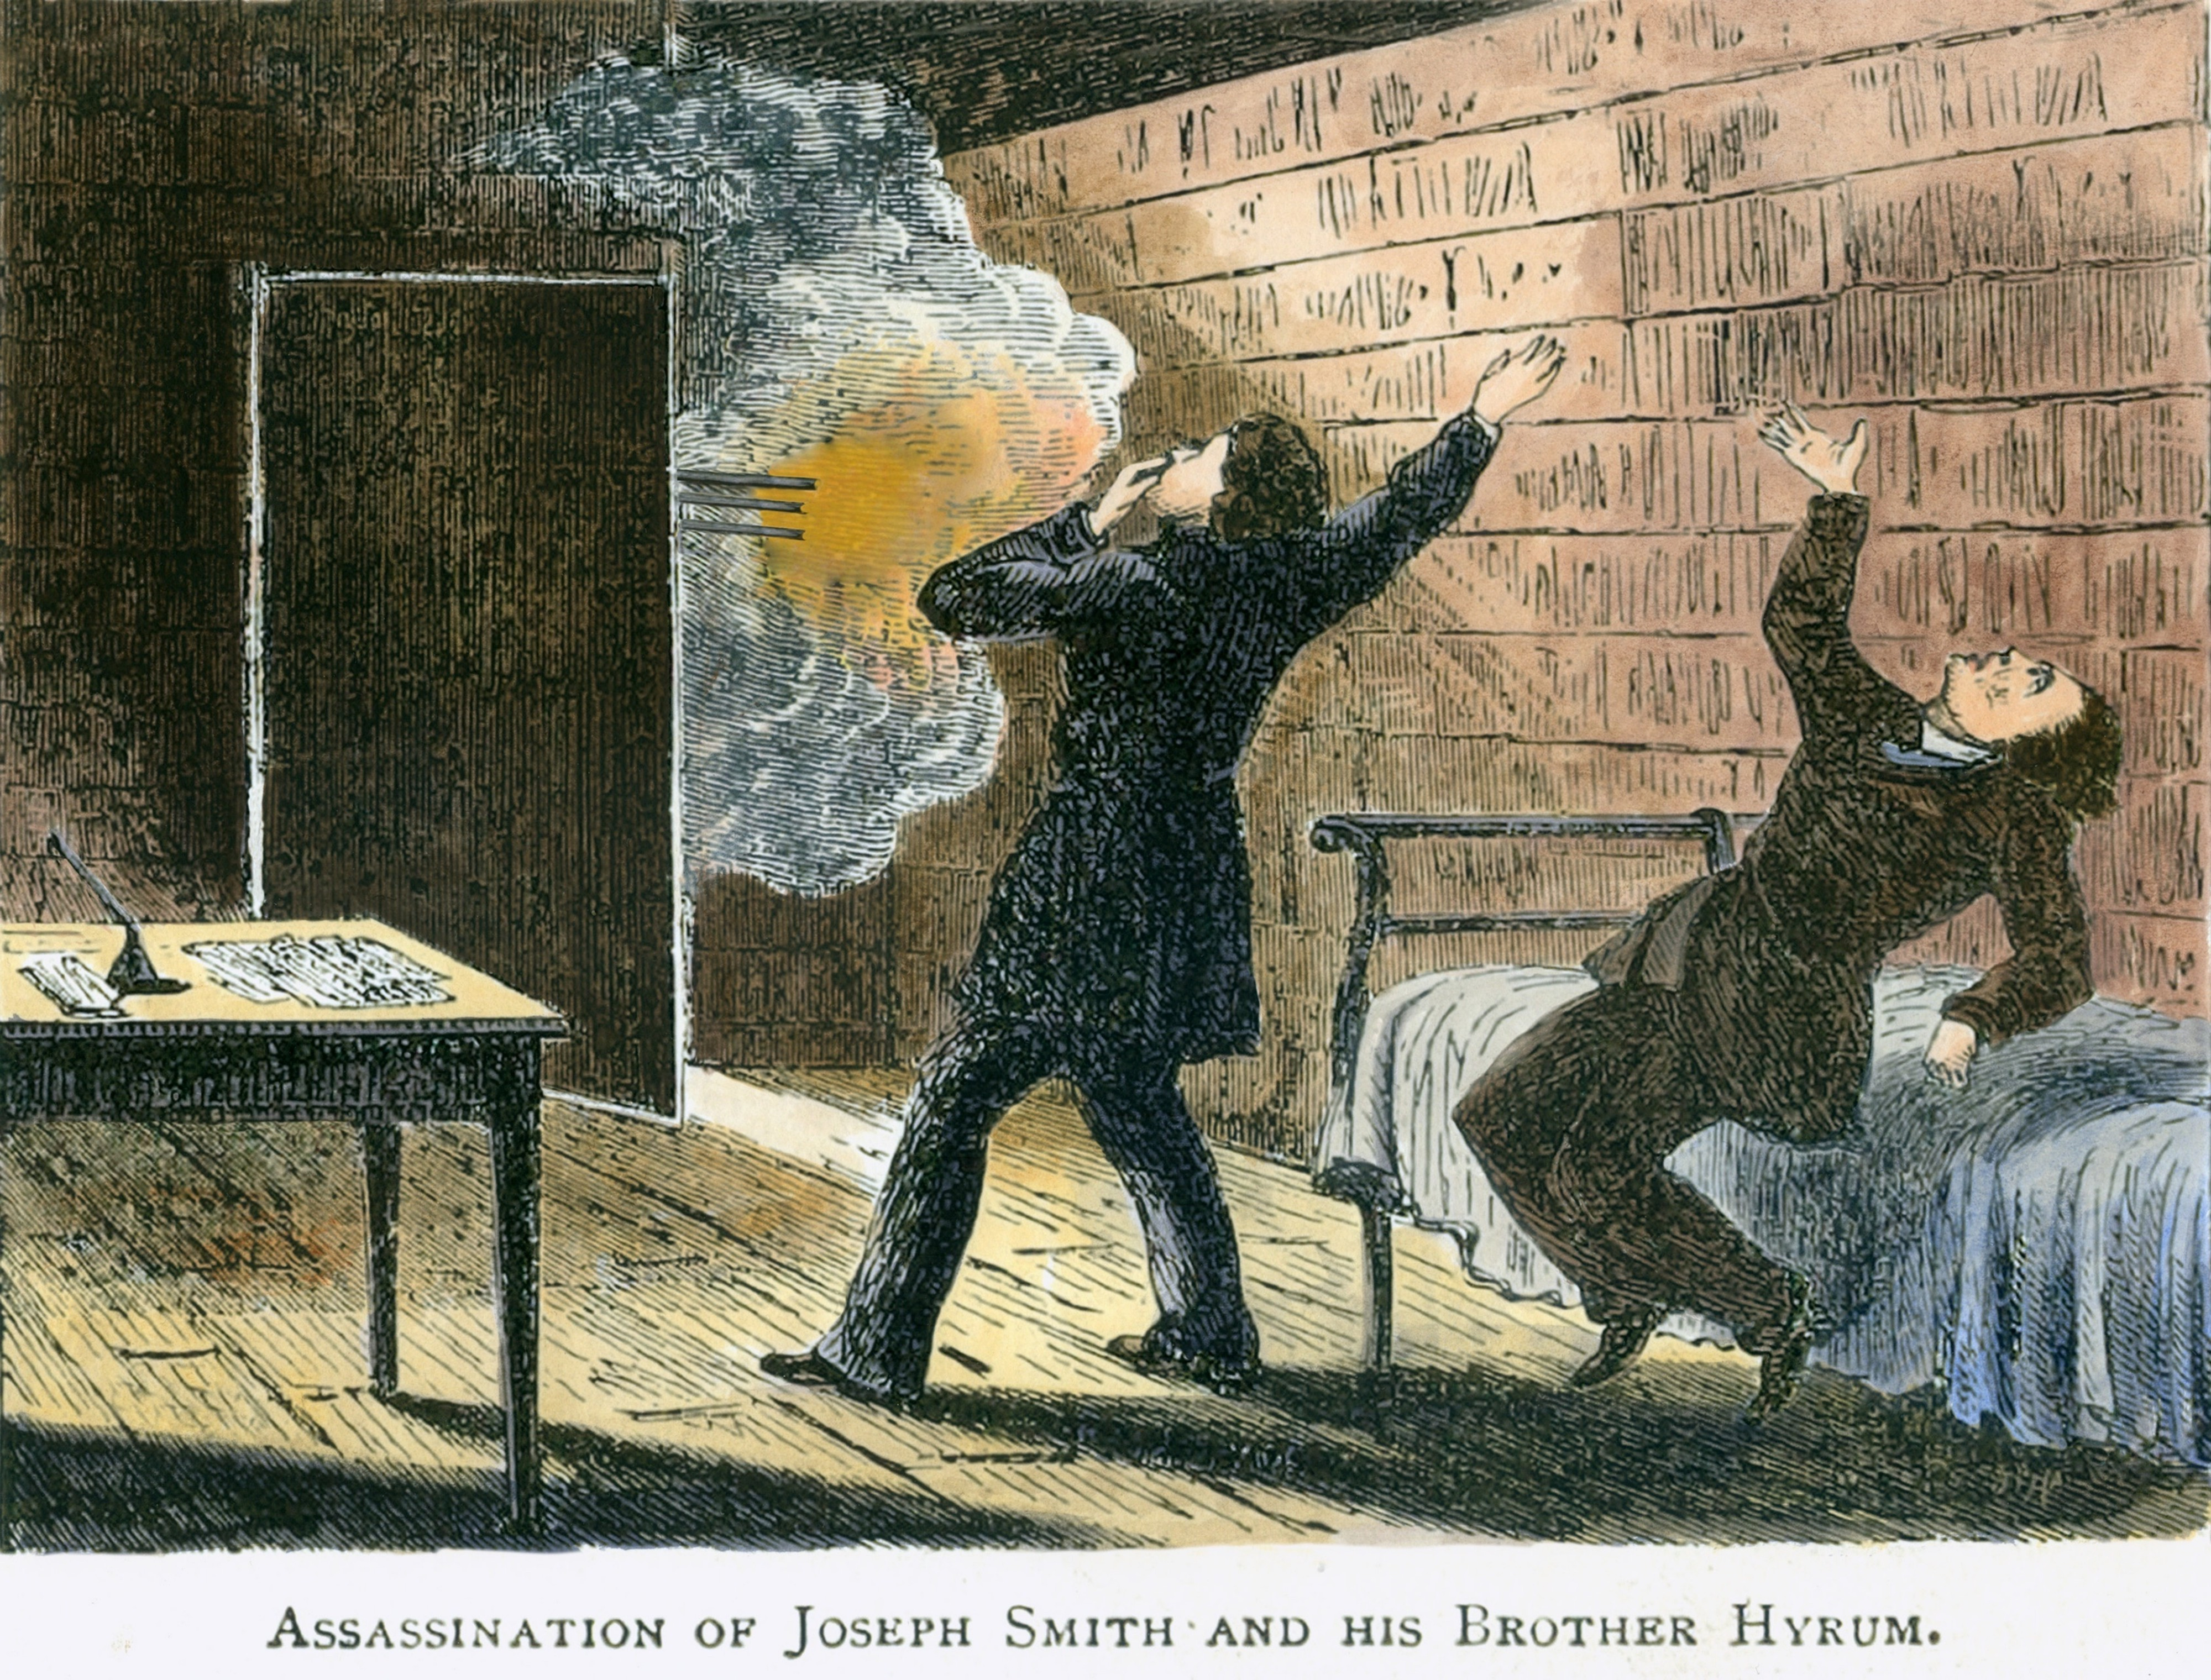 A vintage illustration of Joseph and Hyrum Smith being martyred by gunfire at Liberty Jail.